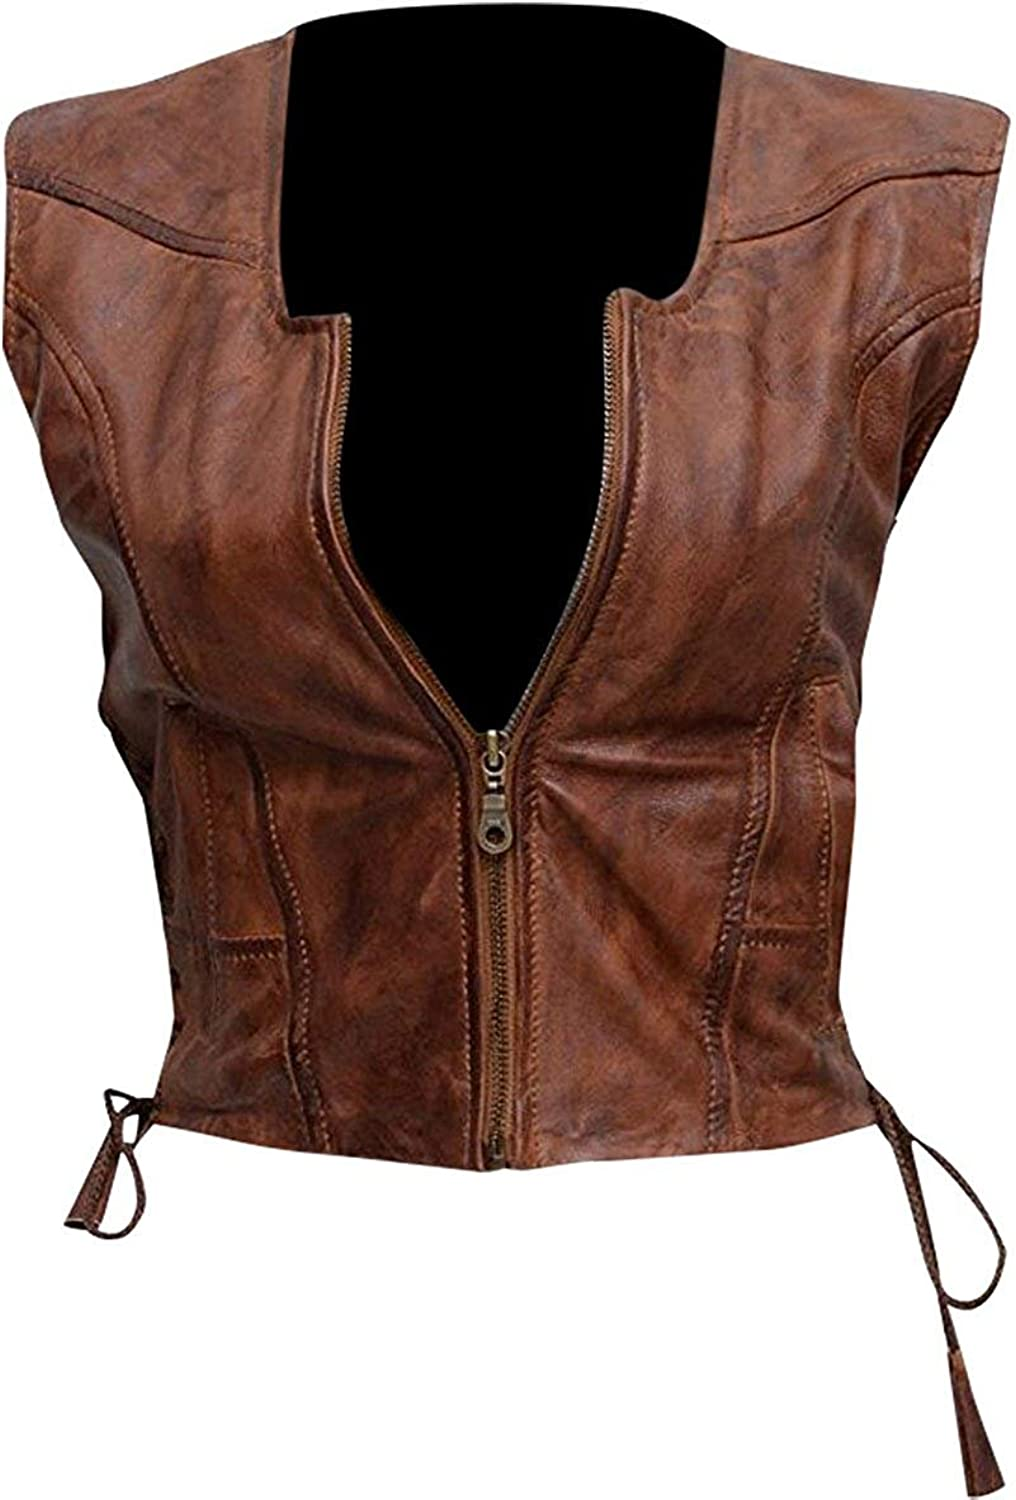 Erha Accessories The Walking Dead Michonne Danai Gurira Motorcycle Brown Faux Leather Vest for Women's